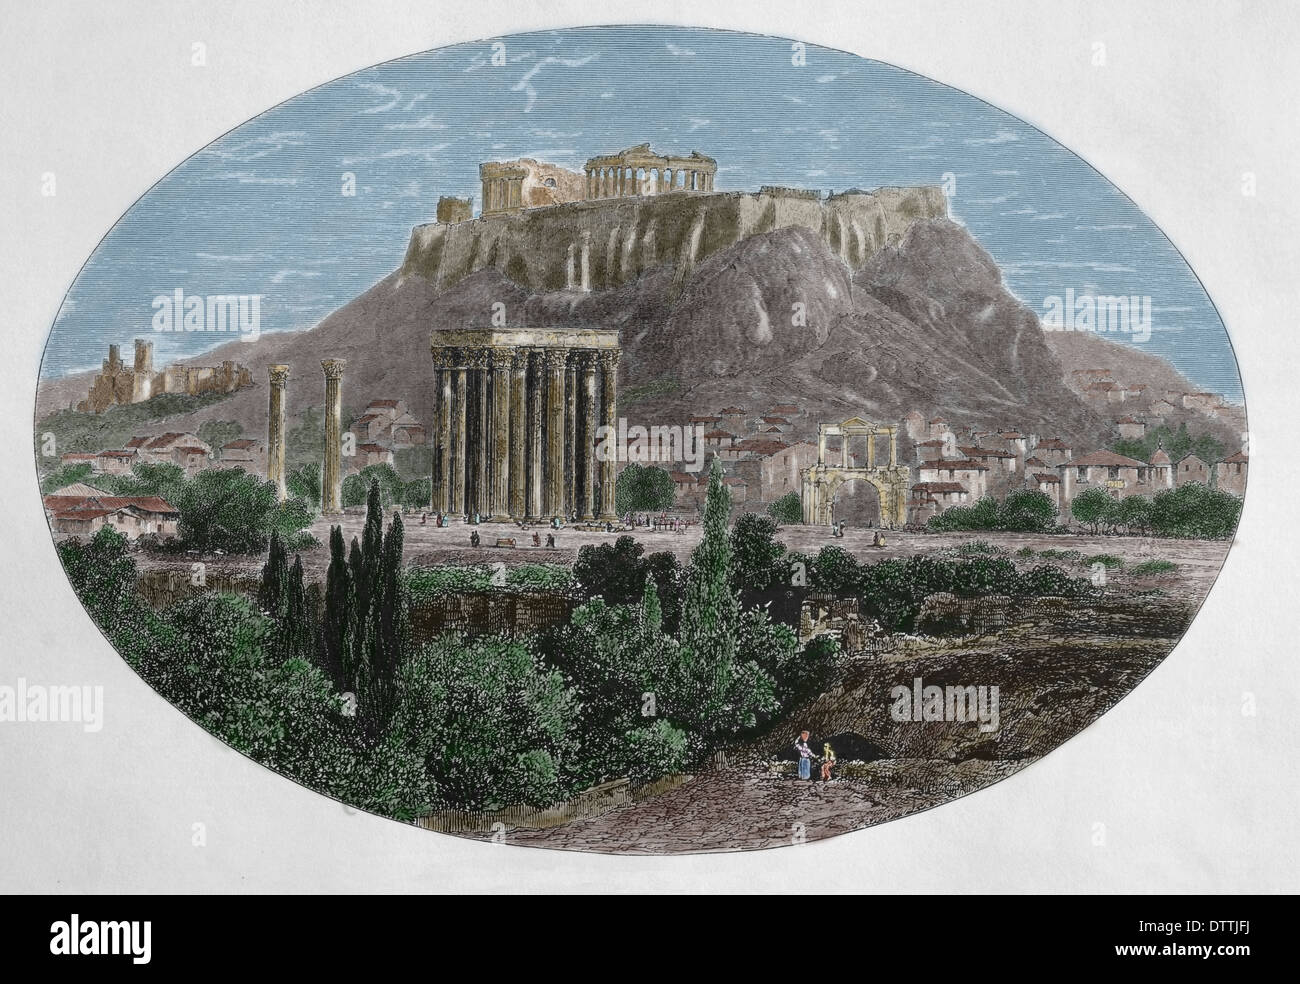 Greece. Athens. Temple of Jupiter and Acropolis Athens. Wood engraving by Edward Whymper, 1879. (Later colouration). - Stock Image